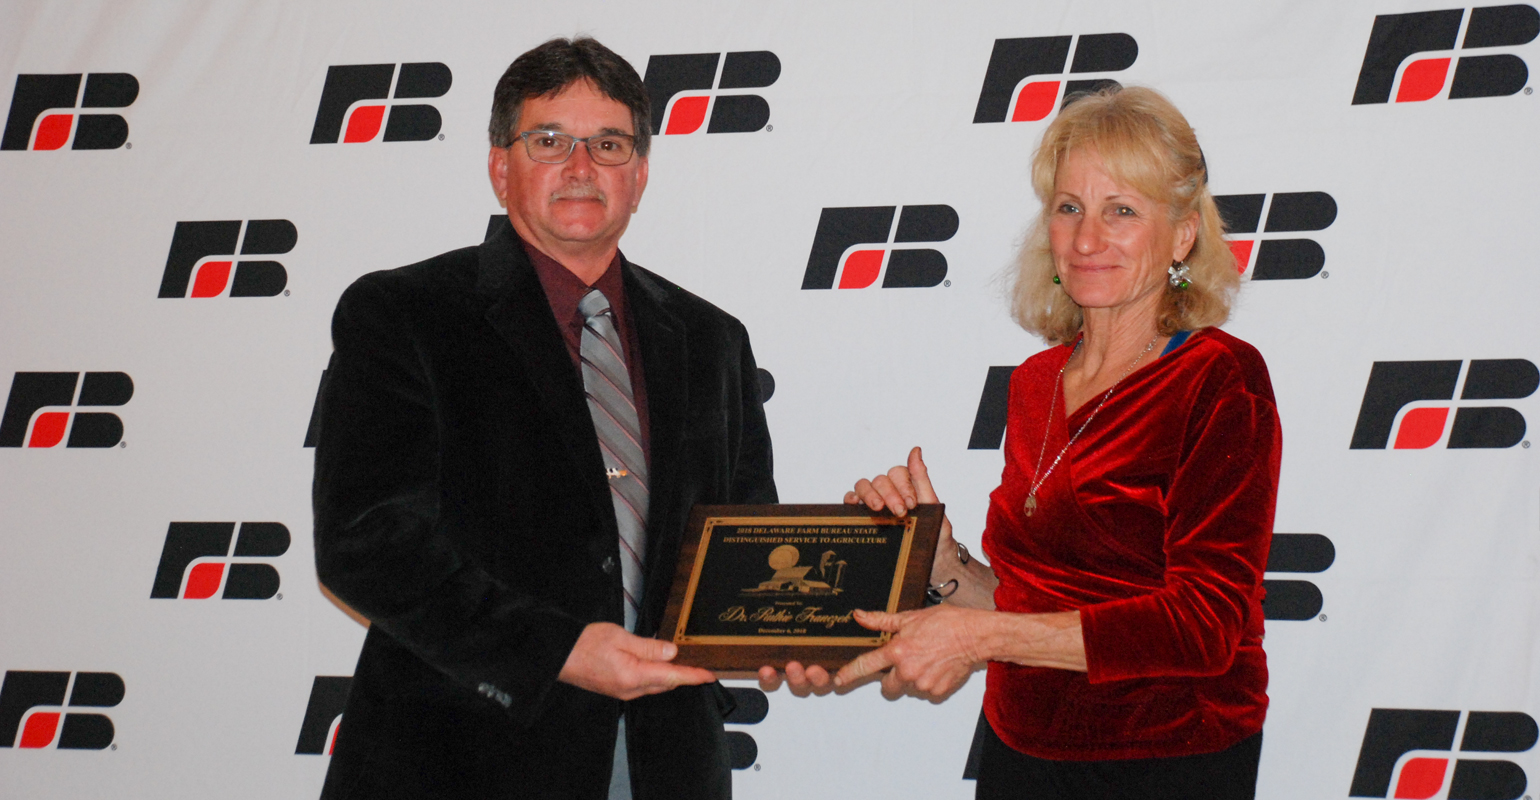 Ruthie Franczek was presented the Distinguished Service to Agriculture Award by Delaware Farm Bureau